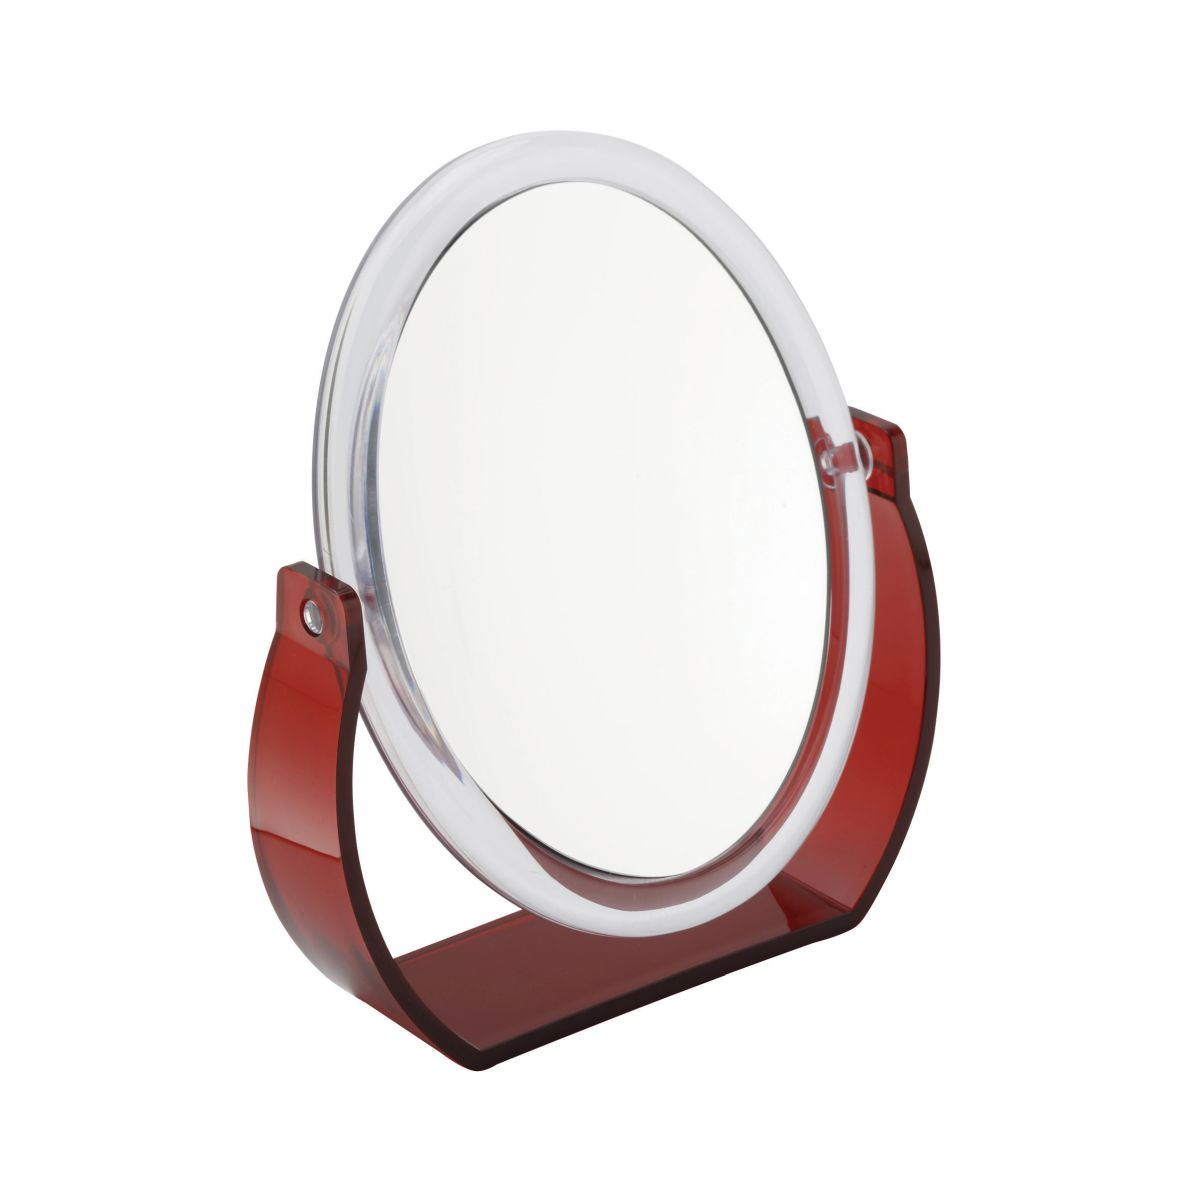 872 red 2 - Lara' 7x Magnification Oval Mirror In Red - 872RED